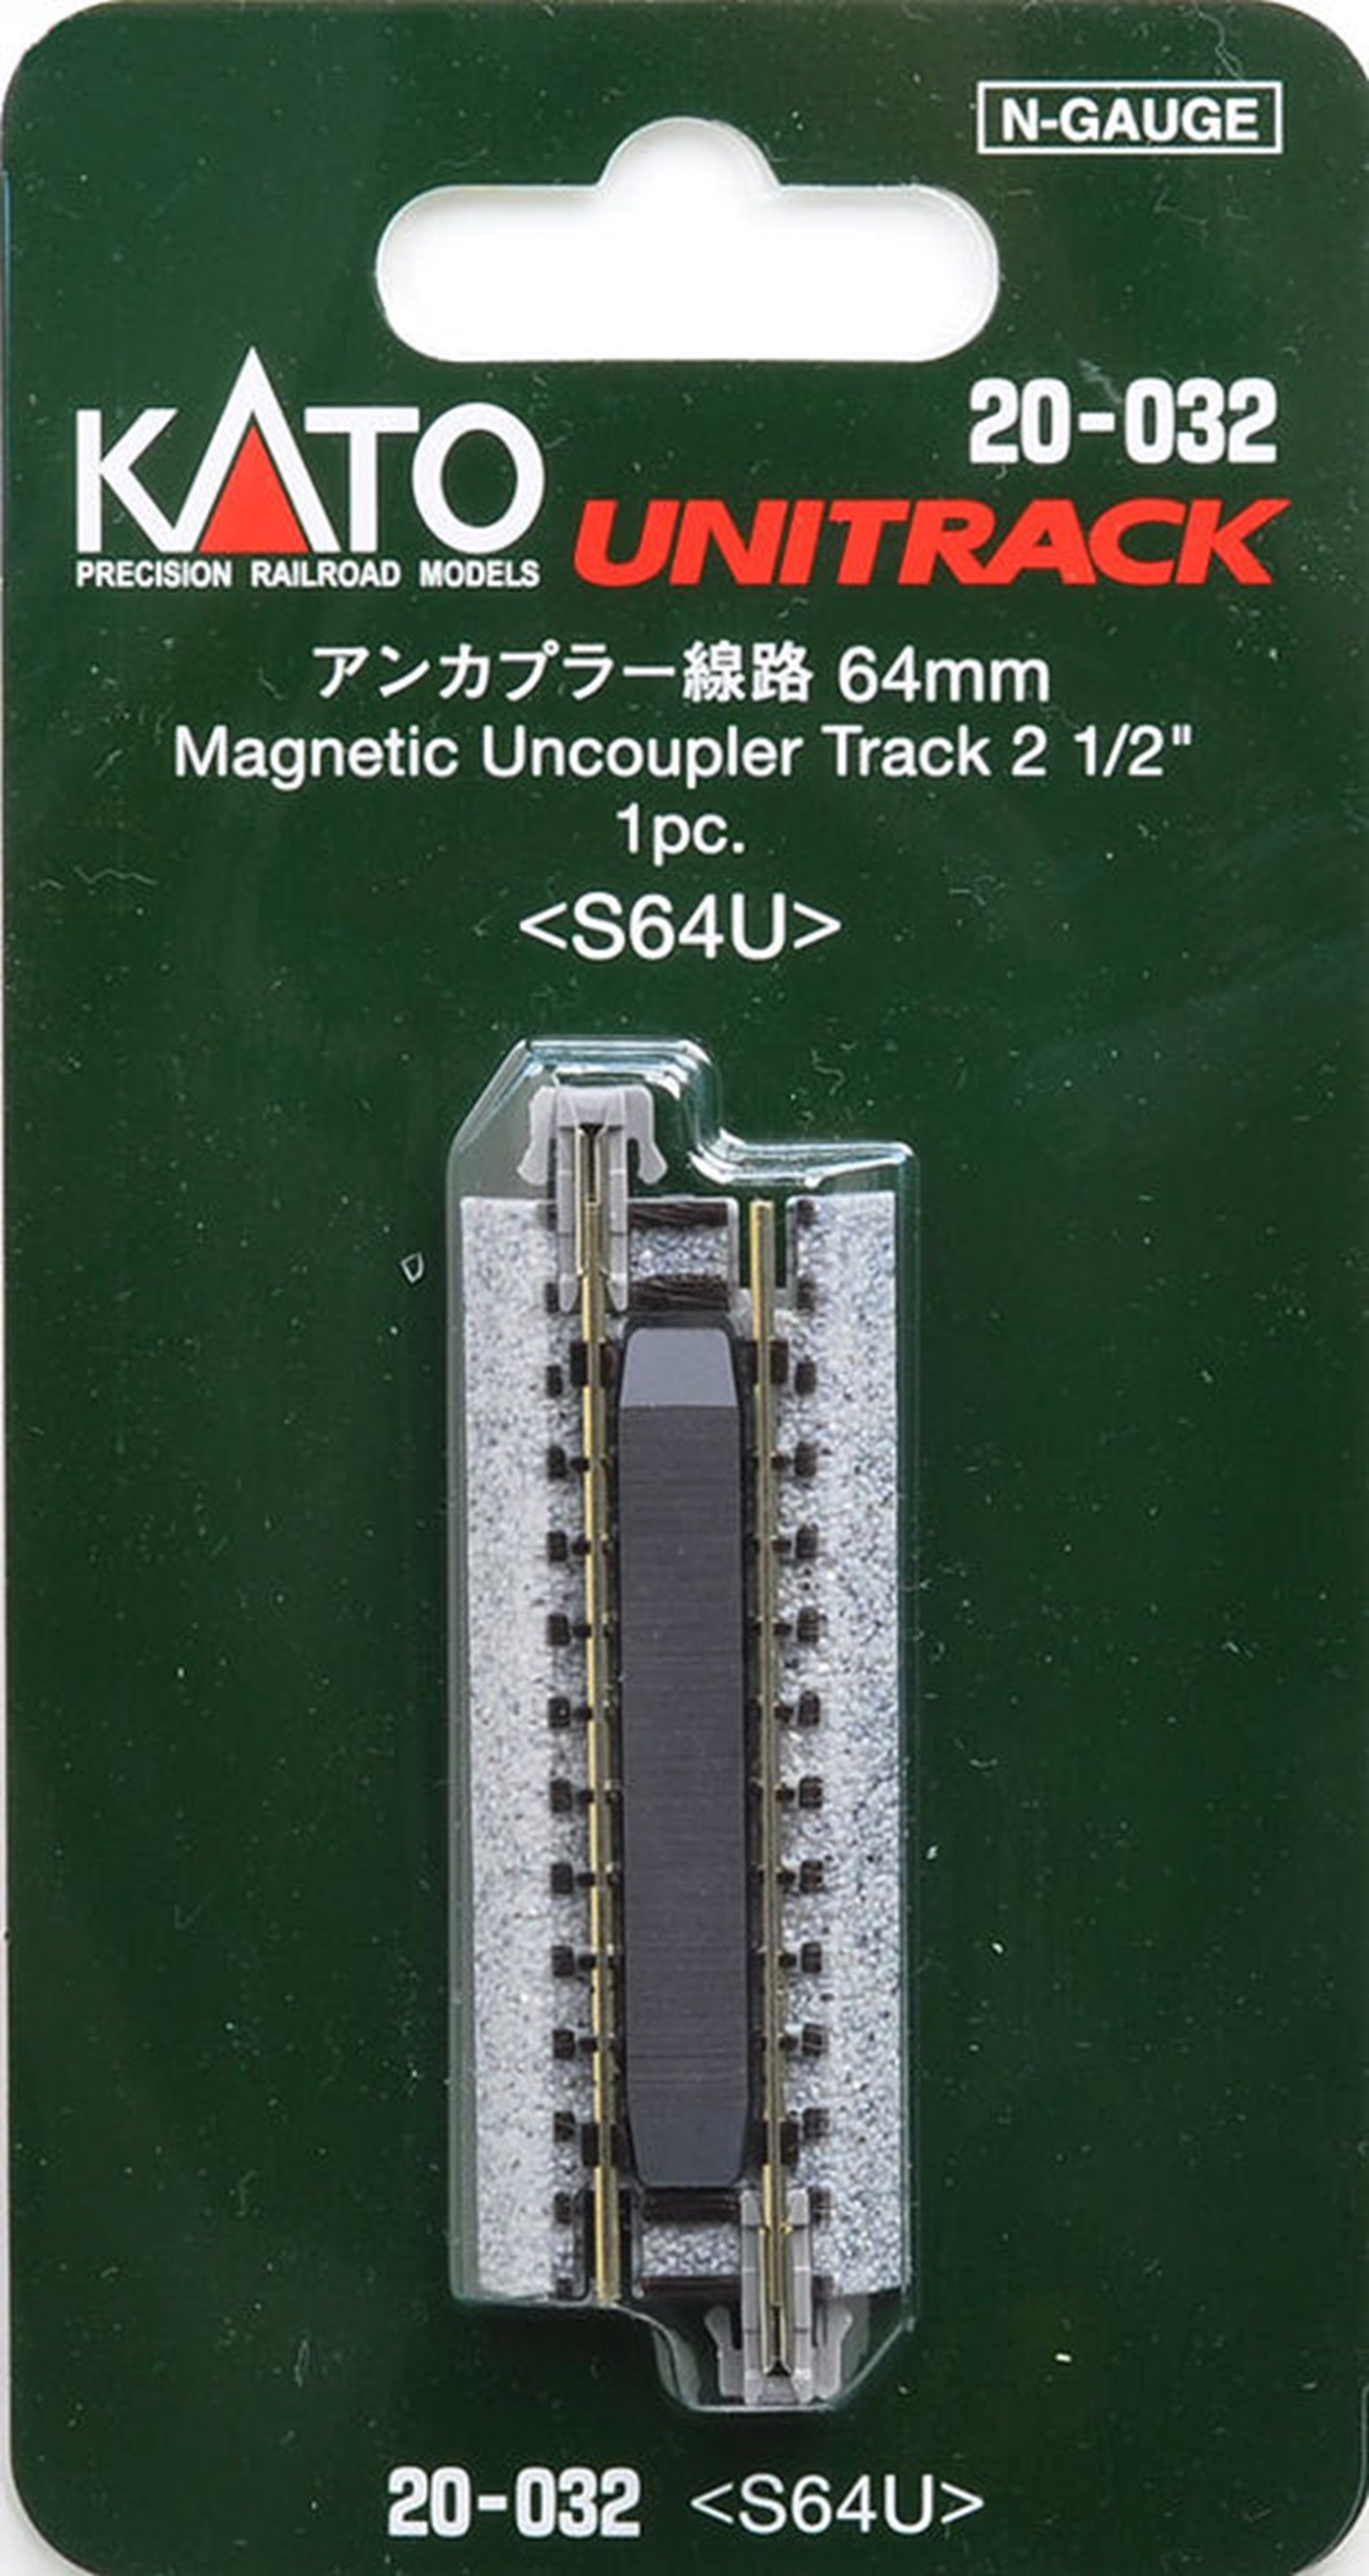 64mm Magnetic Uncoupler Track